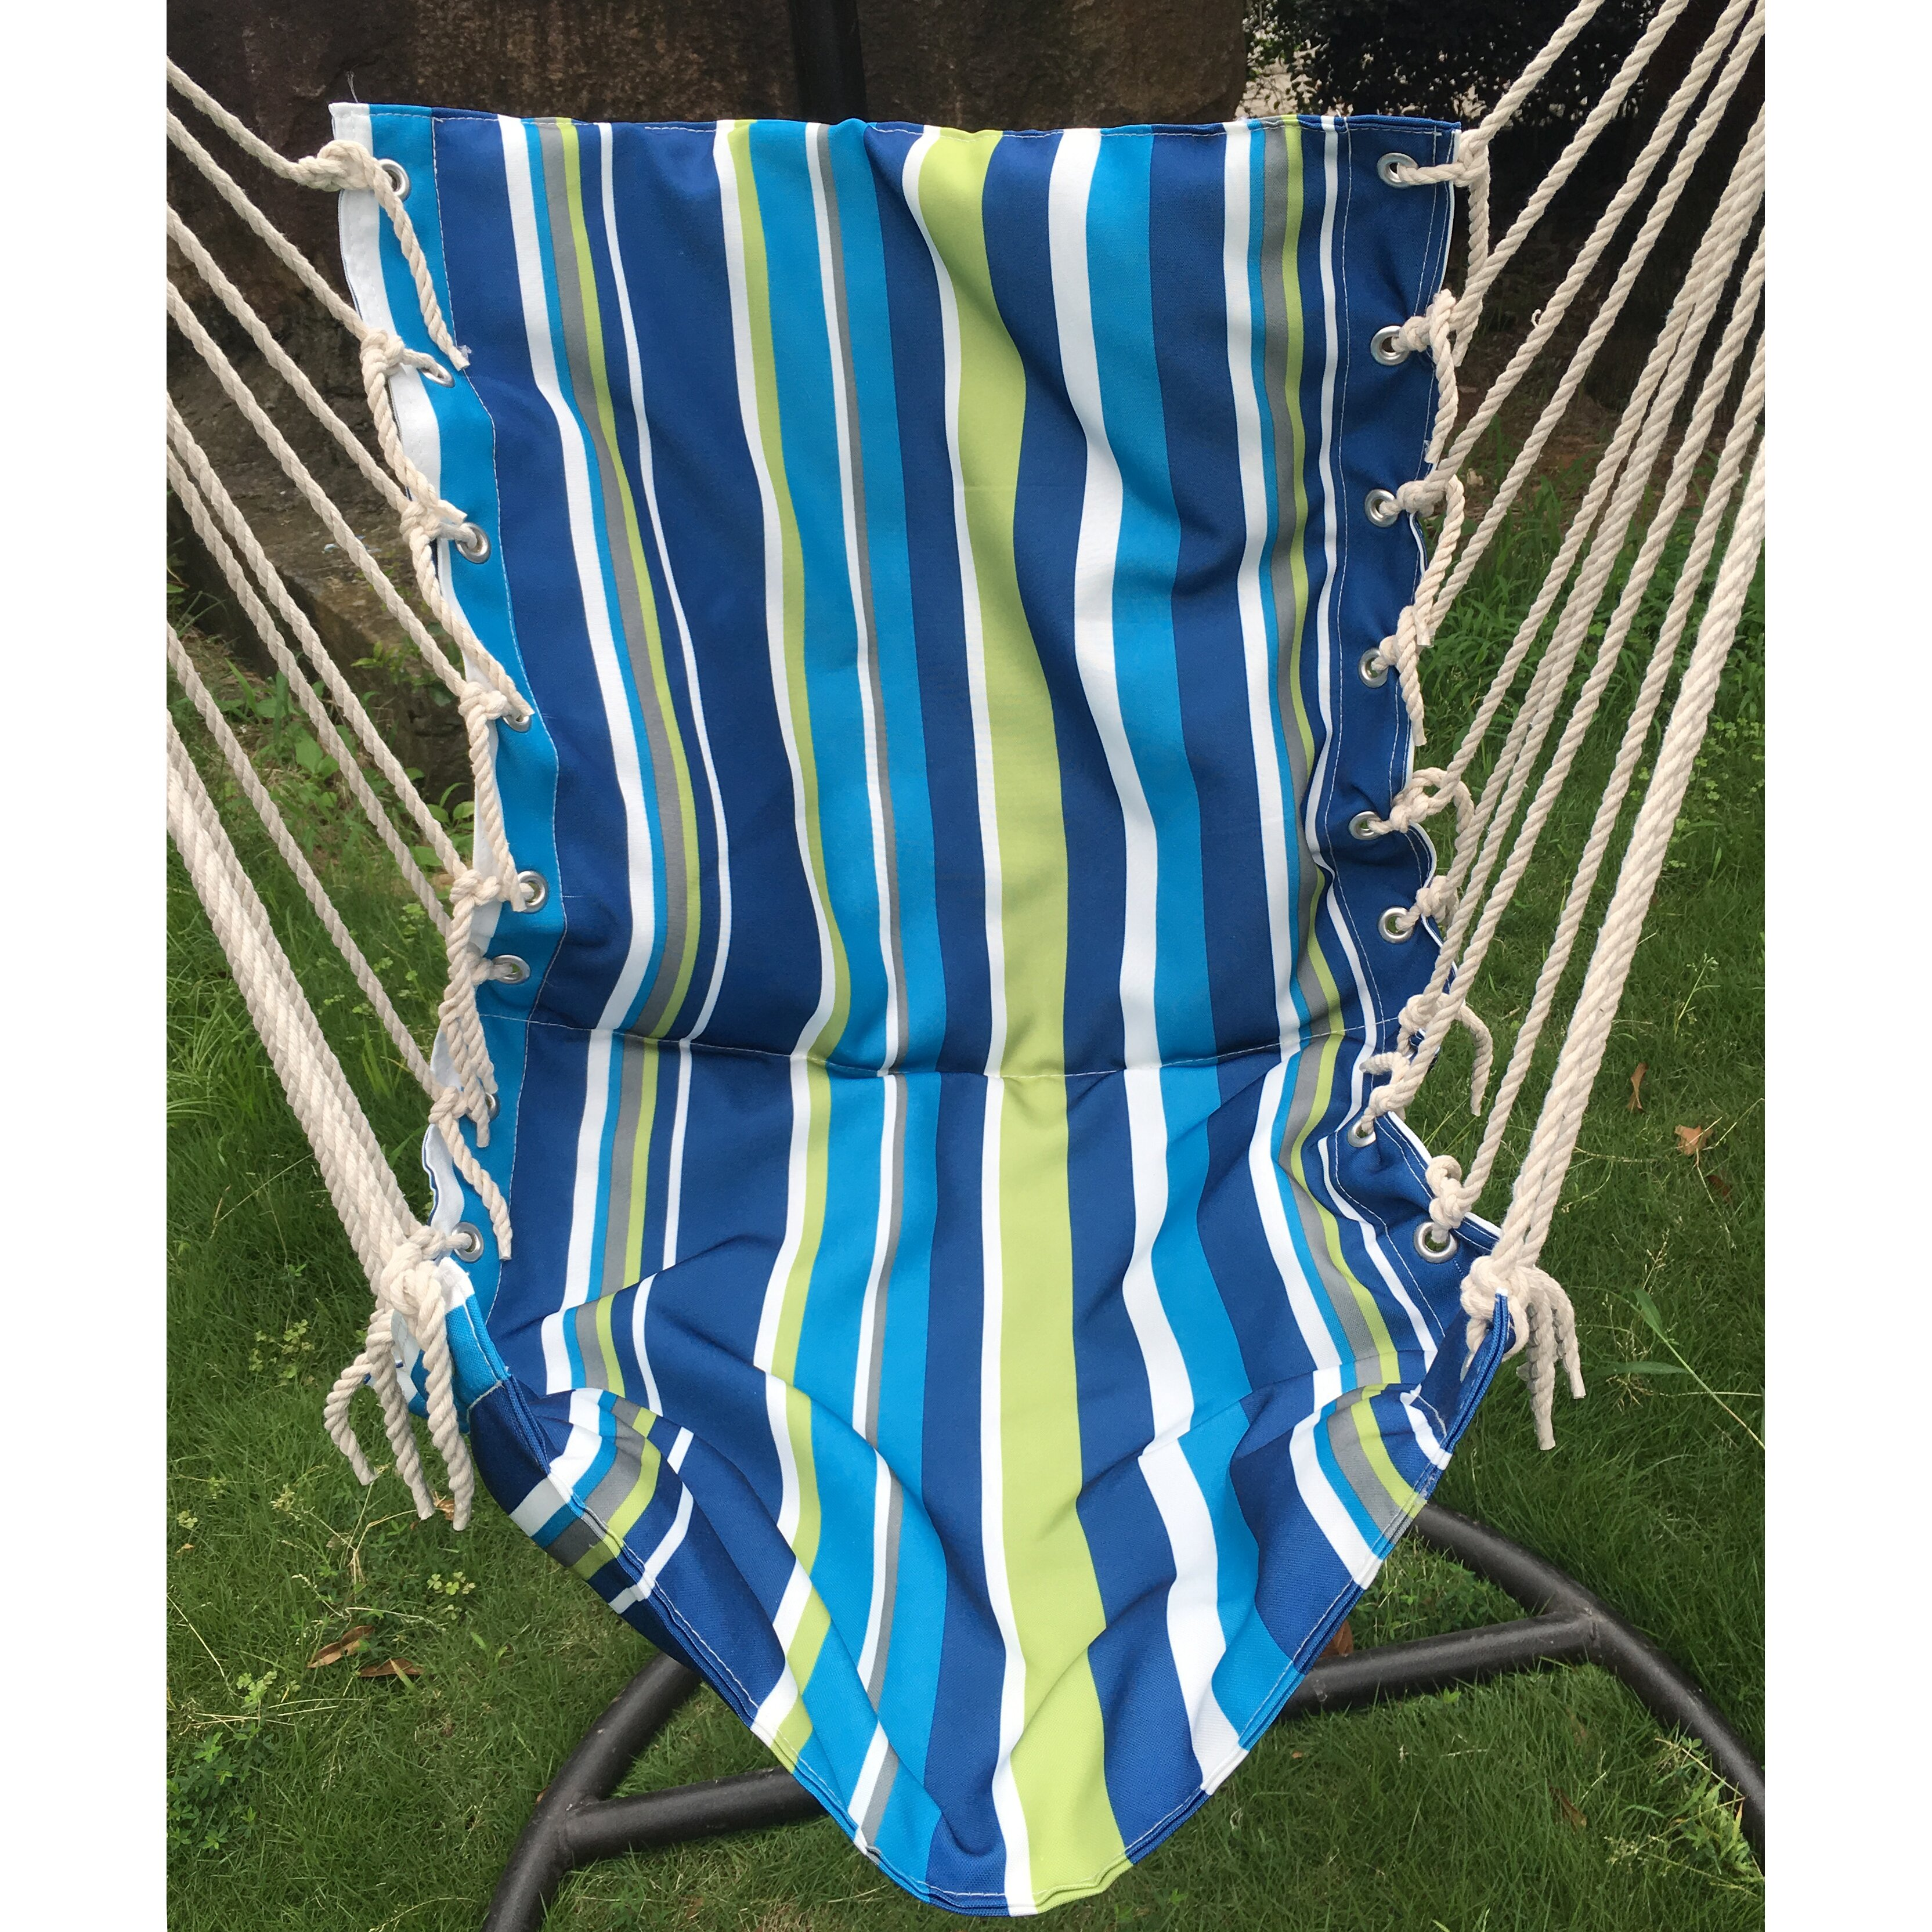 AttractionDesignHome Cotton and Polyester Chair Hammock Wayfair